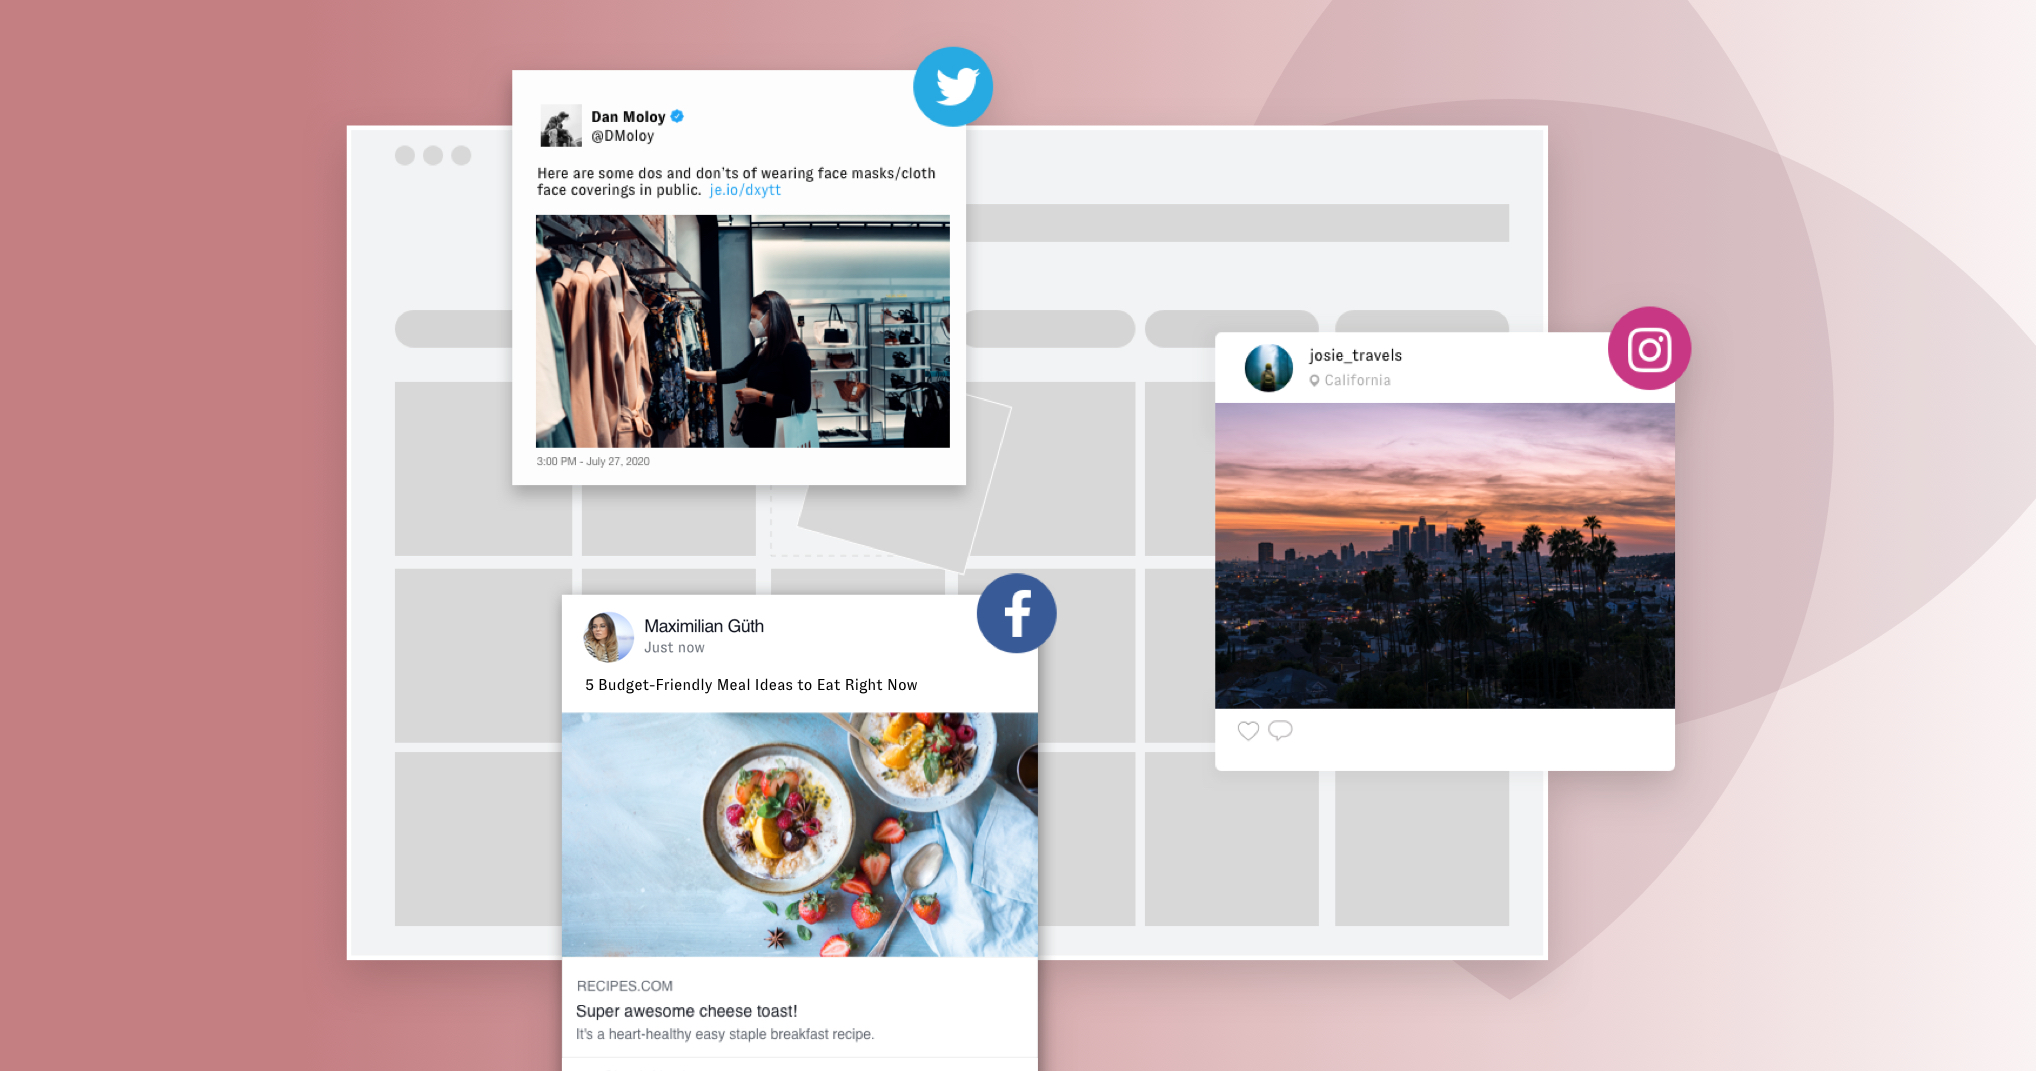 A content creation workflow with grey cards and workflow column boxes hovers over a pink gradient background (with full pink on the left side and nearly white on the right). Hovering over the workflow box are three social posts: one from Twitter, Facebook, and Instagram. The first one depicts a woman with a mask shopping for cloths. The Instagram post shows California at sunset and the Facebook post shows some budget-friendly meals. All this is gathered from user-generated or employee-generated content.